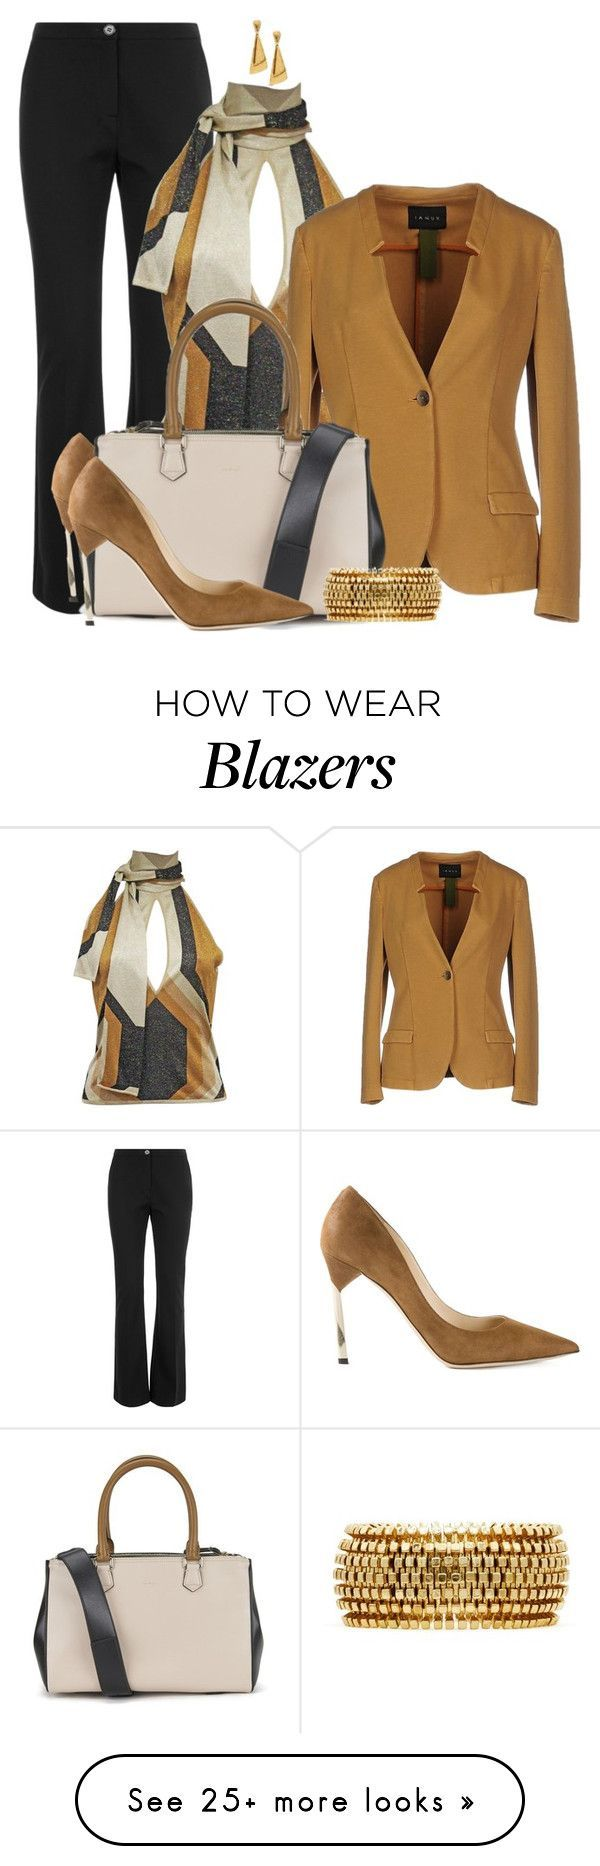 """WINTER 2016 #14 by DaNewMeh"" by thchosn on Polyvore featuring Damsel in a Dress, Tom Ford, IANUX, Jimmy Choo, Paul Smith, Chico's, Kenneth Jay Lane, women's clothing, women's fashion and women"